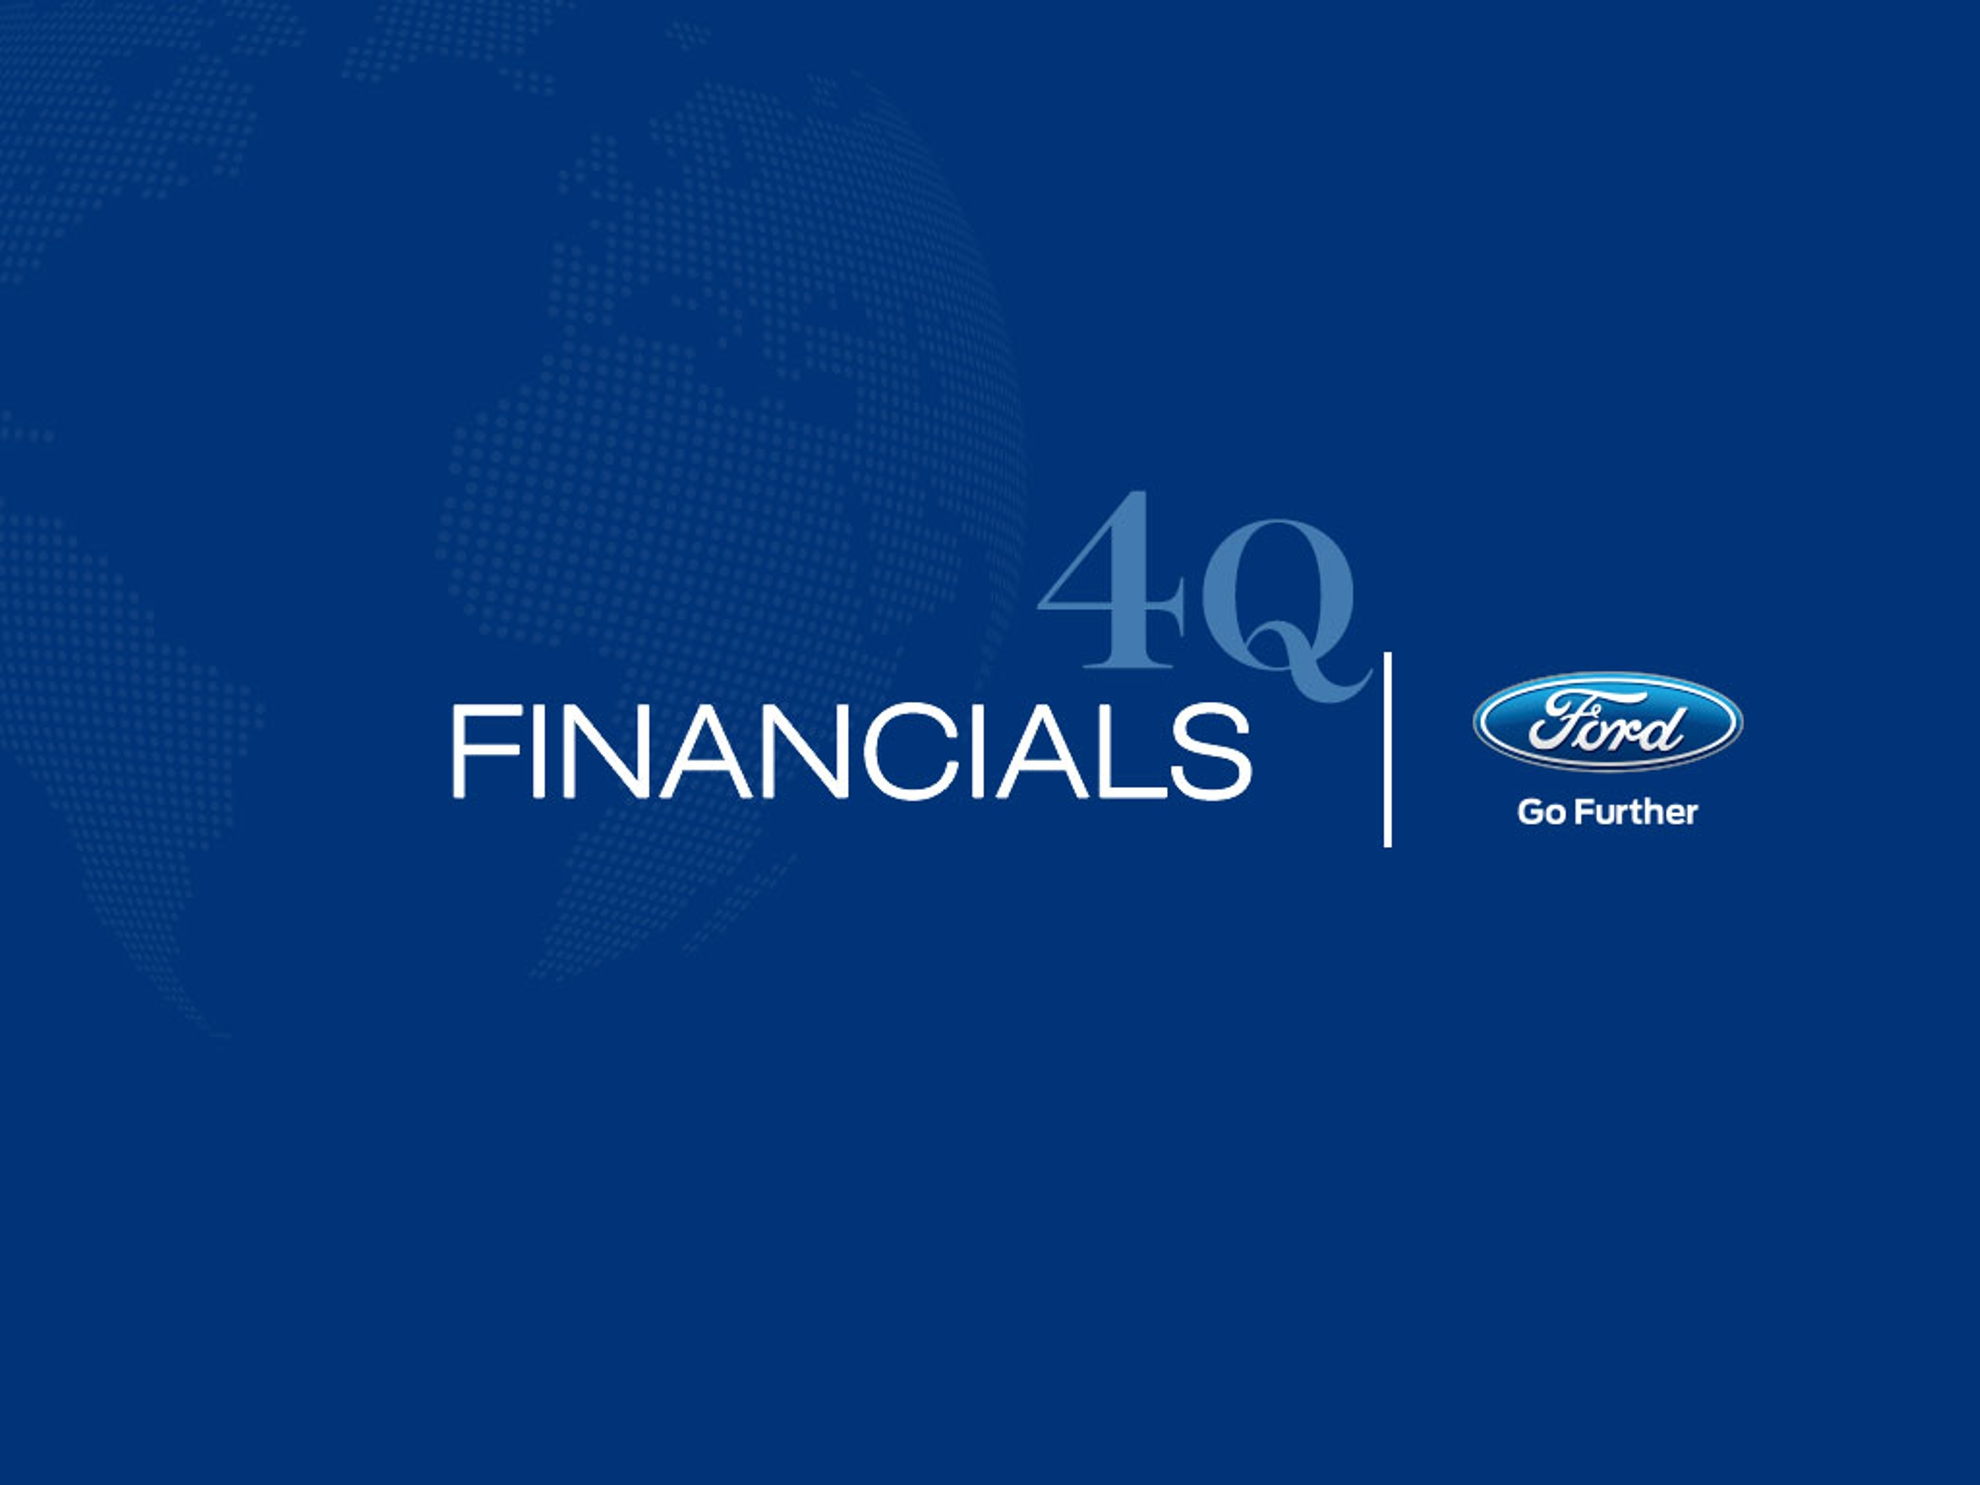 Ford-Financials